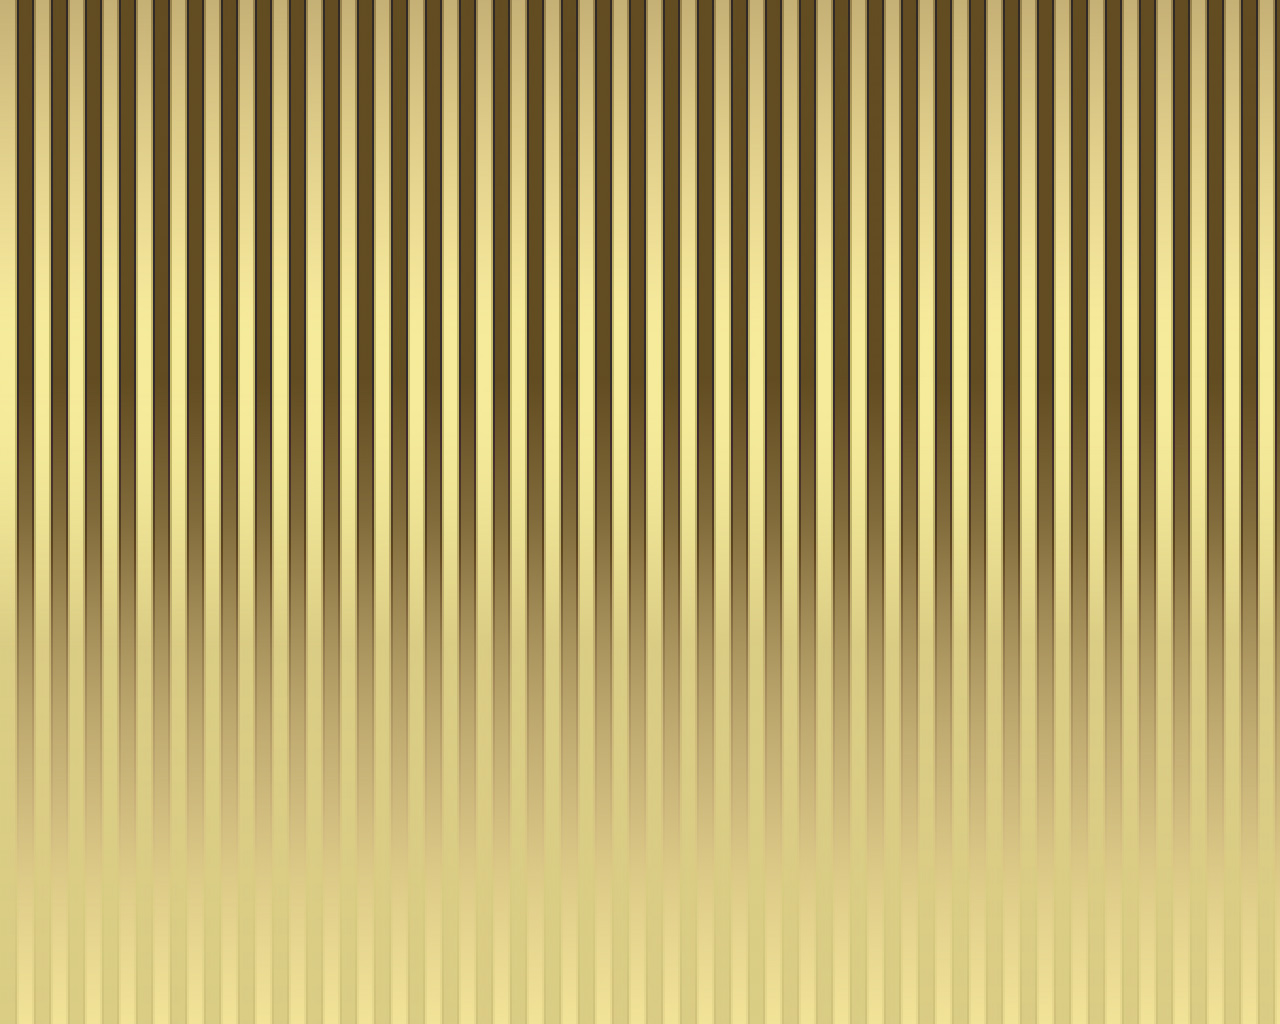 Sh Yn Design Stripe Wallpaper Gold Stripe 1280x1024